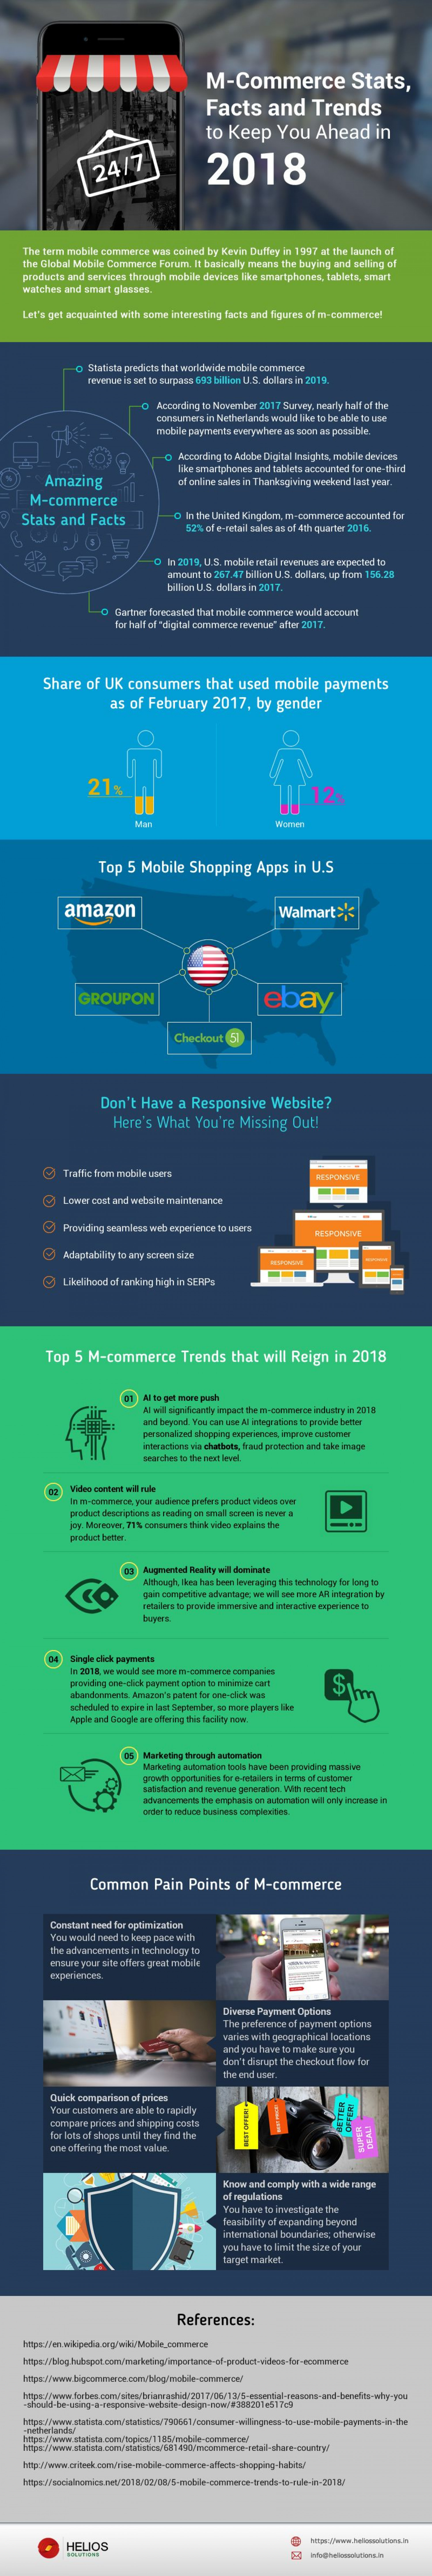 M-Commerce Stats, Facts and Trends to Keep You Ahead in 2018 Infographic